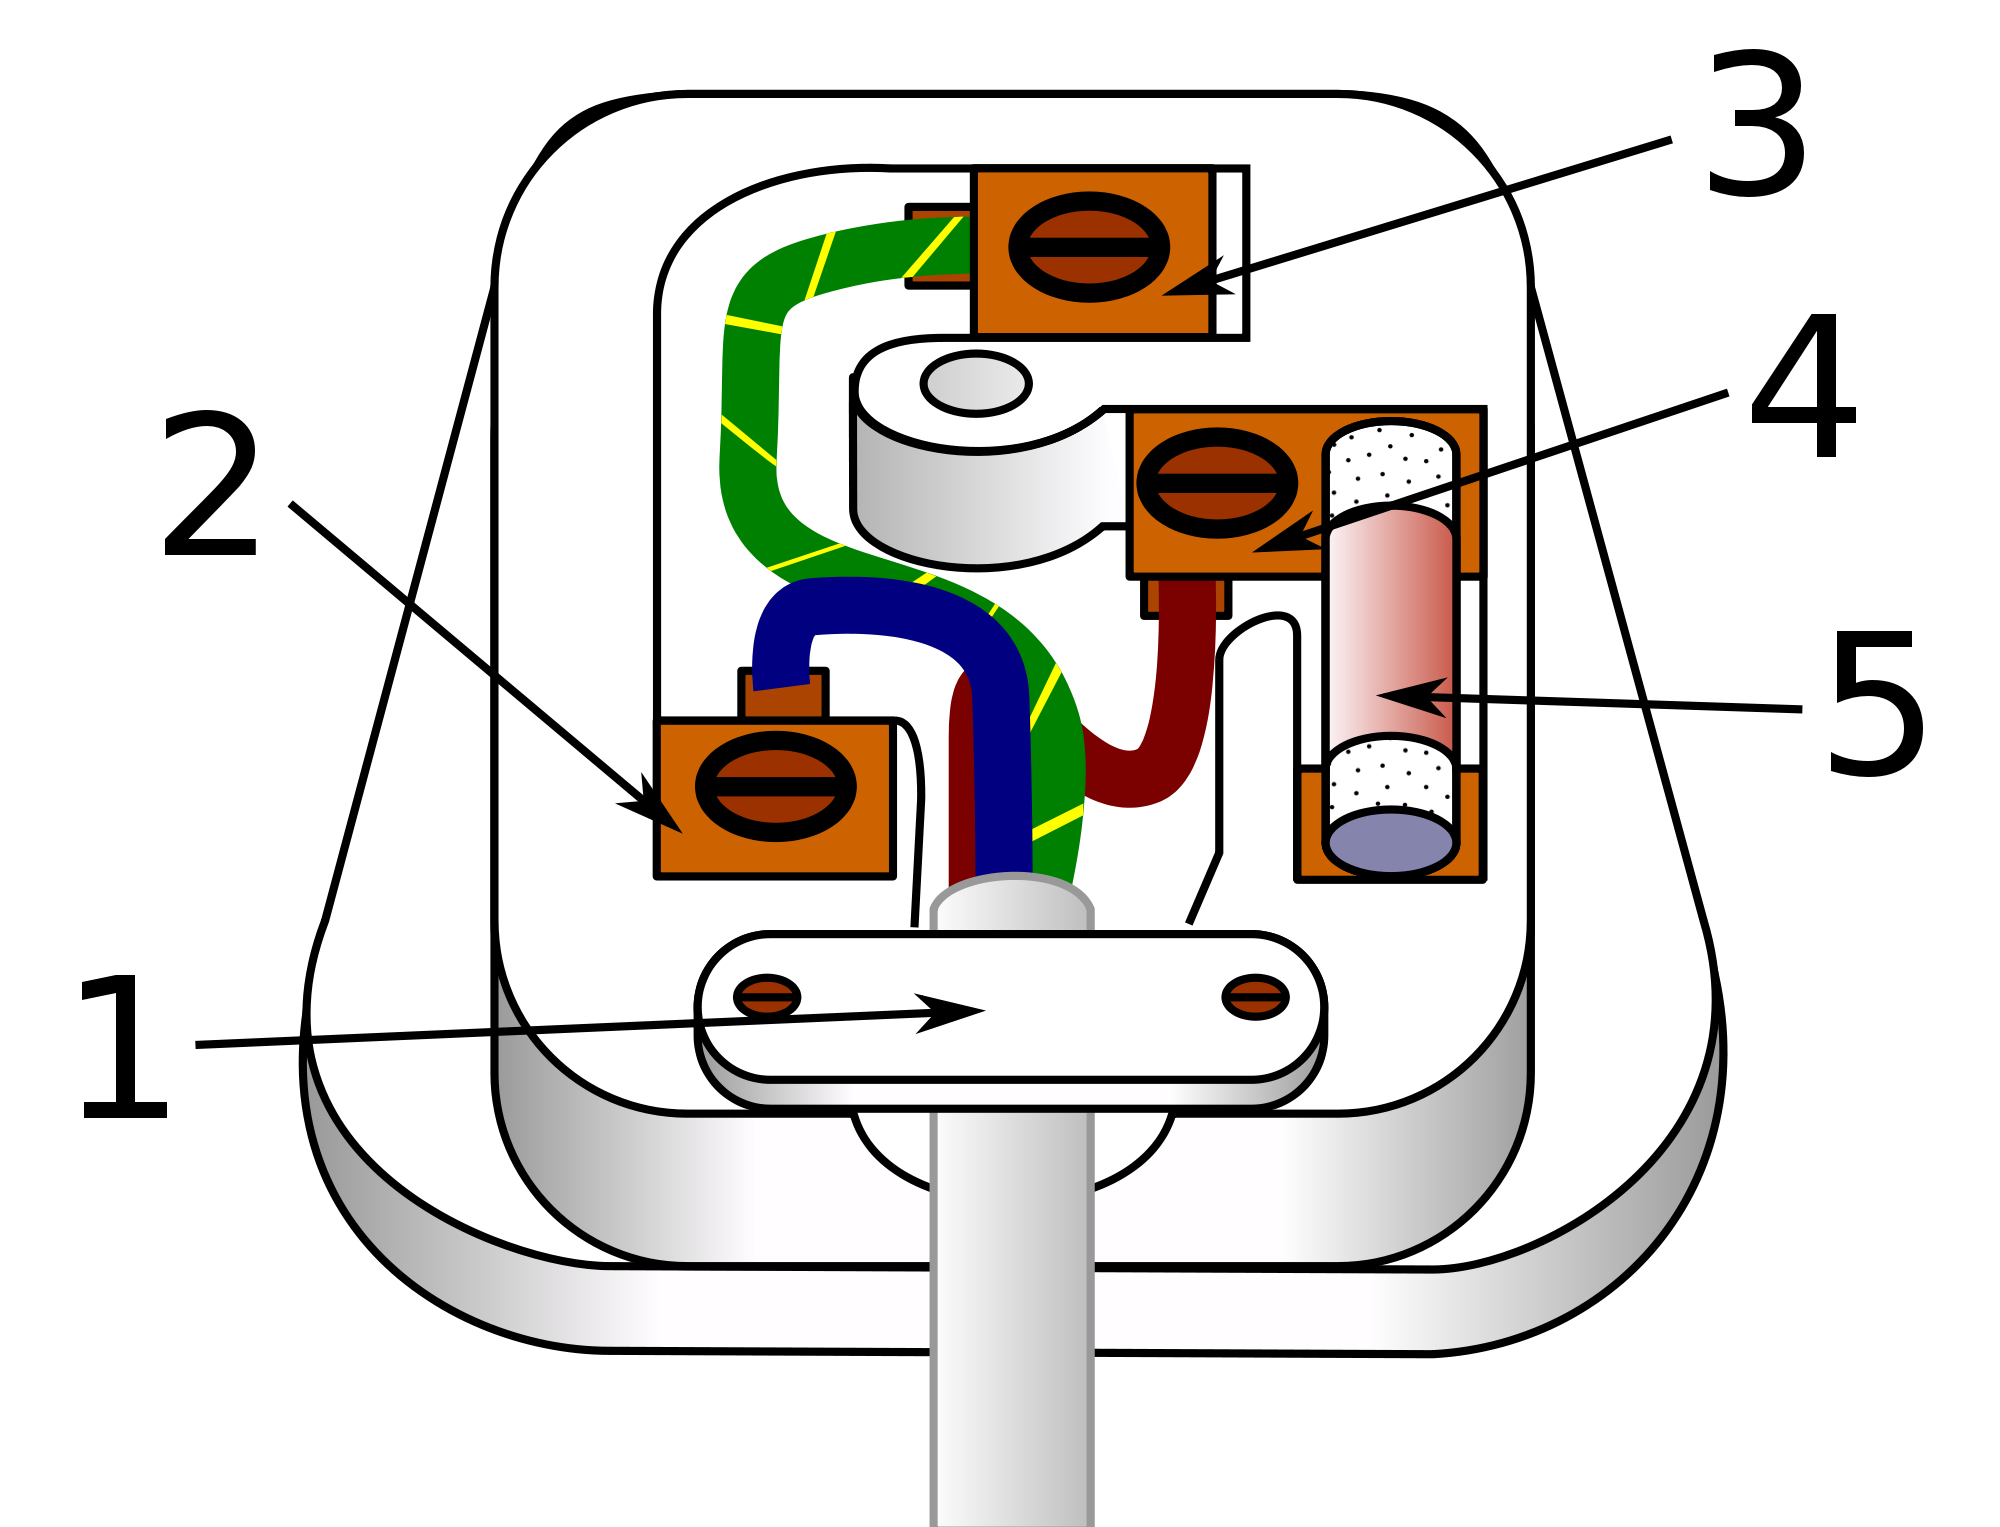 3 Pin Plug Wiring Ask Answer Diagram Australian Electrical Colours How To Wire A Mmk Electricians Dublin Rh Mmkelectricians Ie India Standards Uk